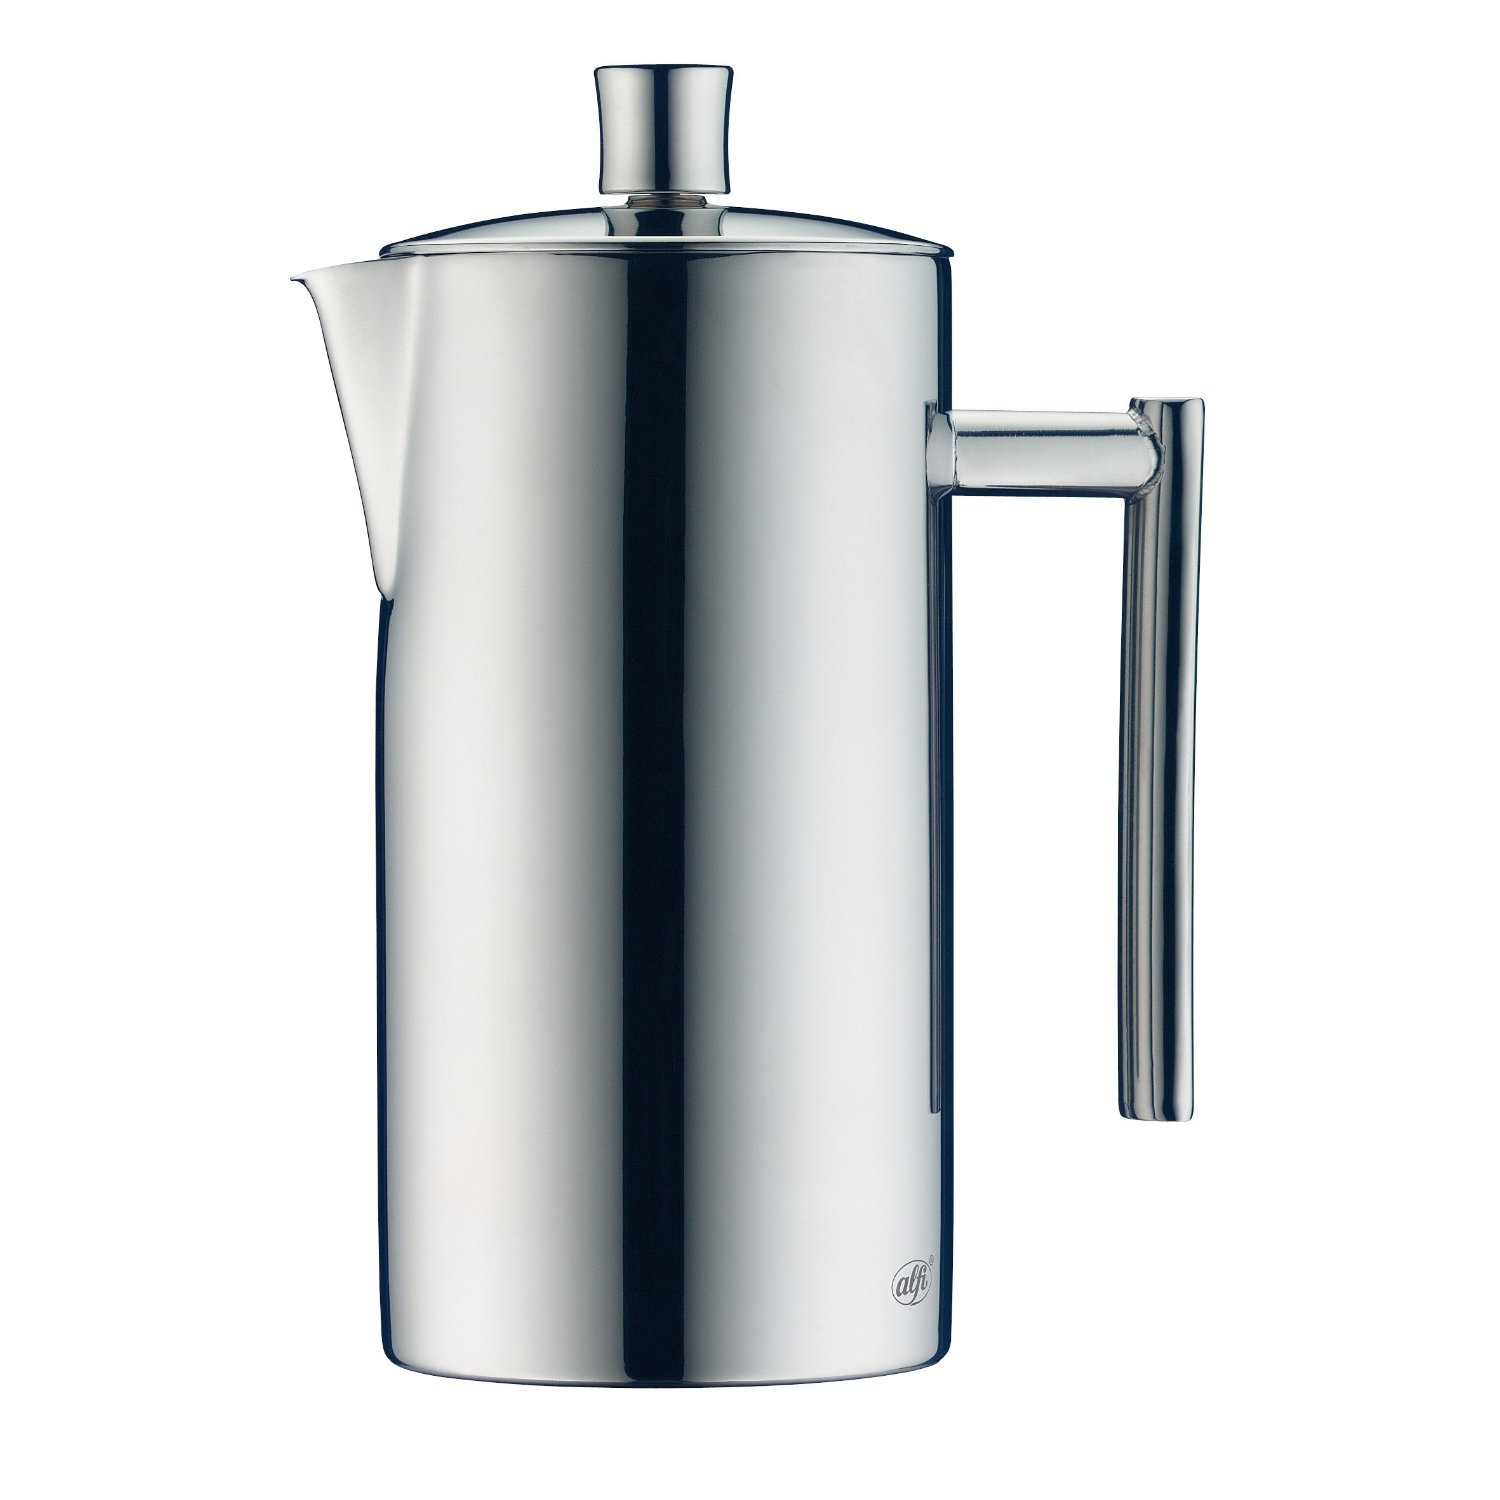 Alfi French Press steel